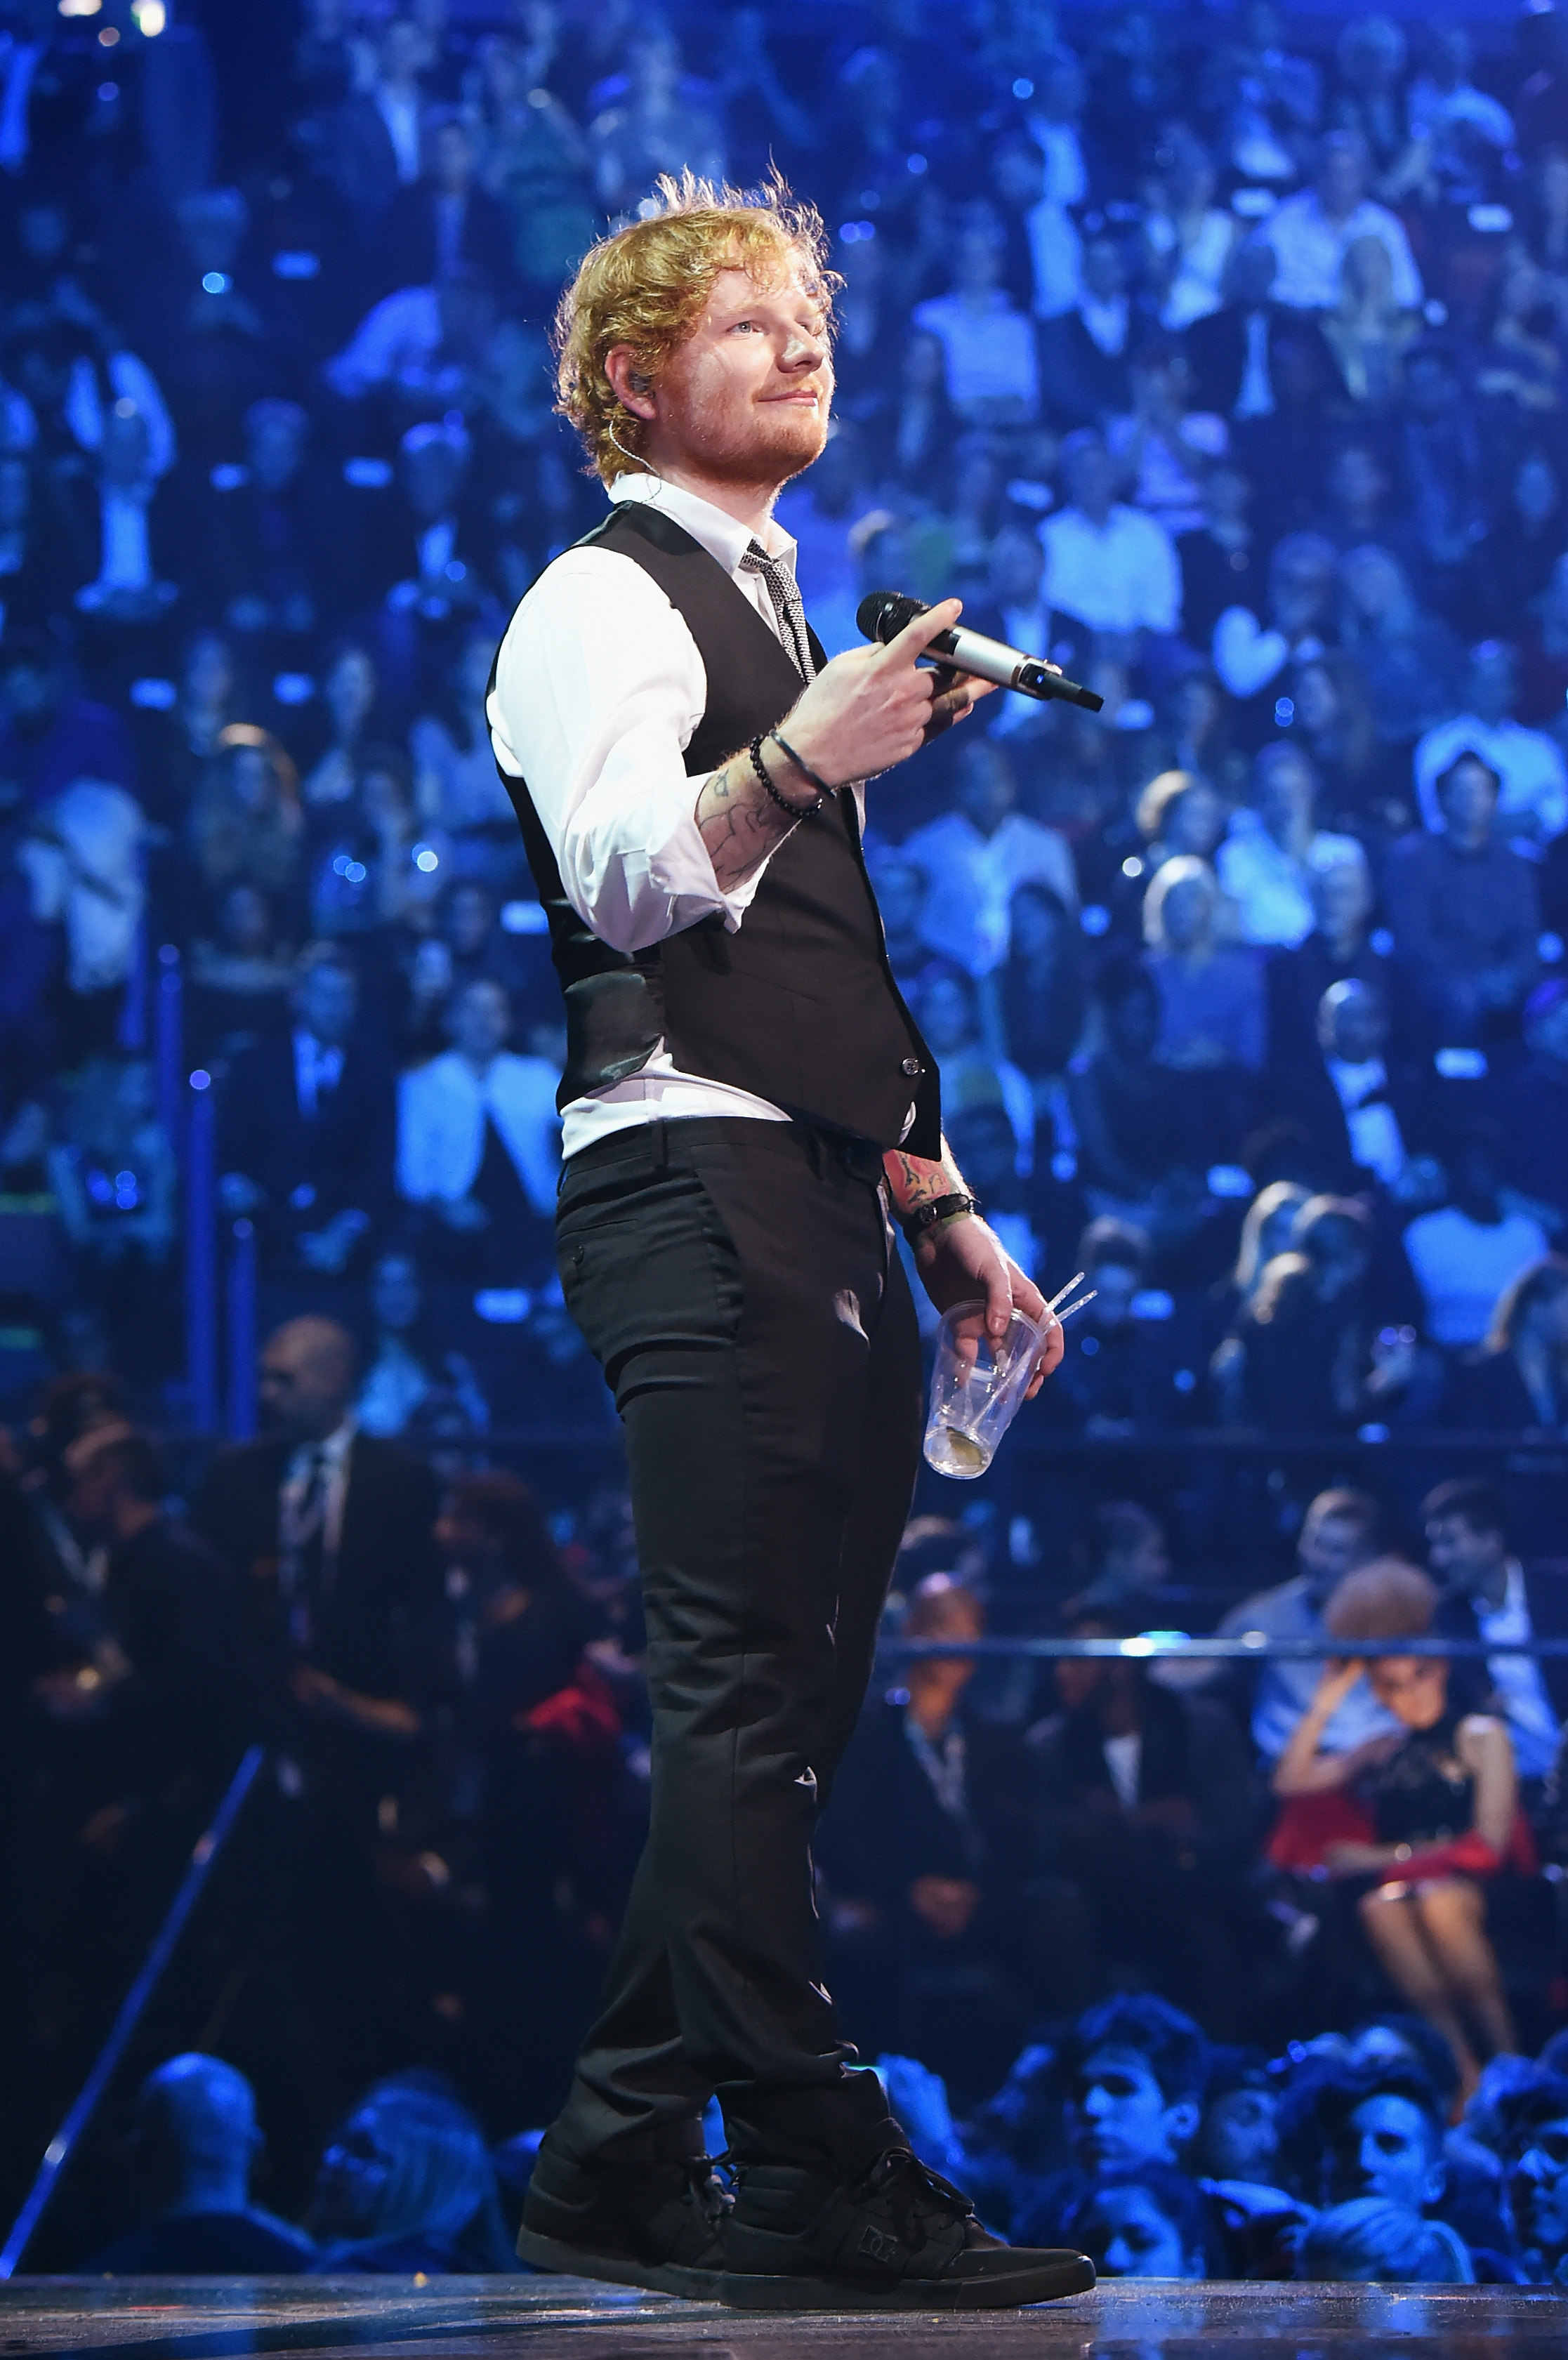 Ed Sheeran on Oct. 25, 2015 in Milan.